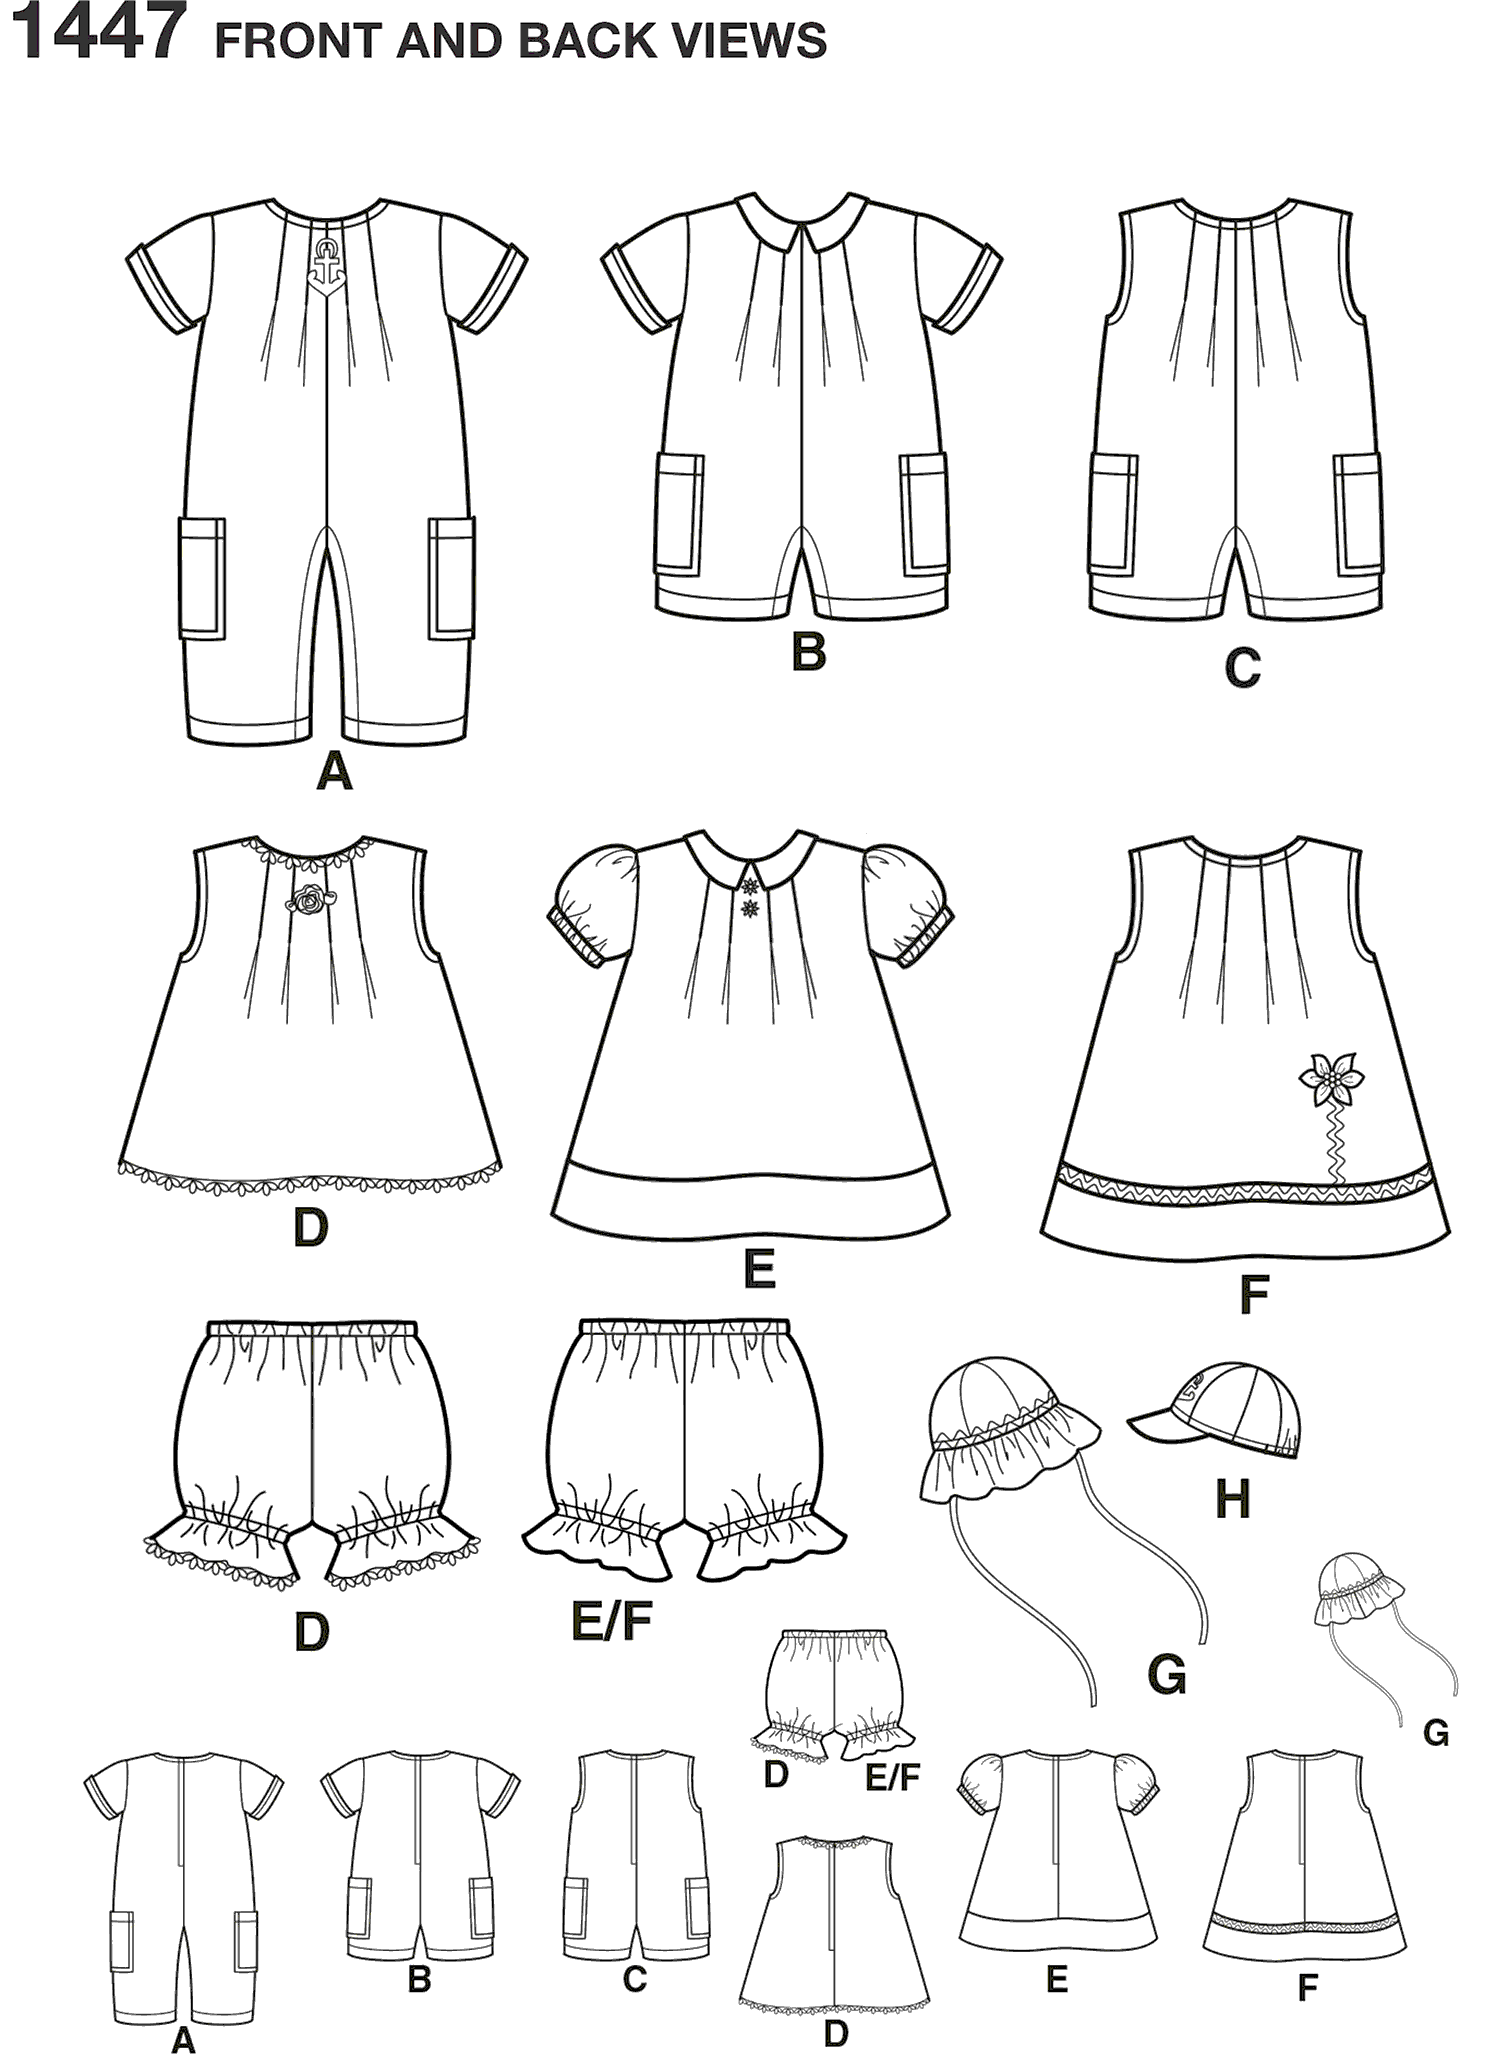 Simplicity Pattern 1447 Babies Romper Dress Top Panties and Hats Line Art From Patternsandplains.com